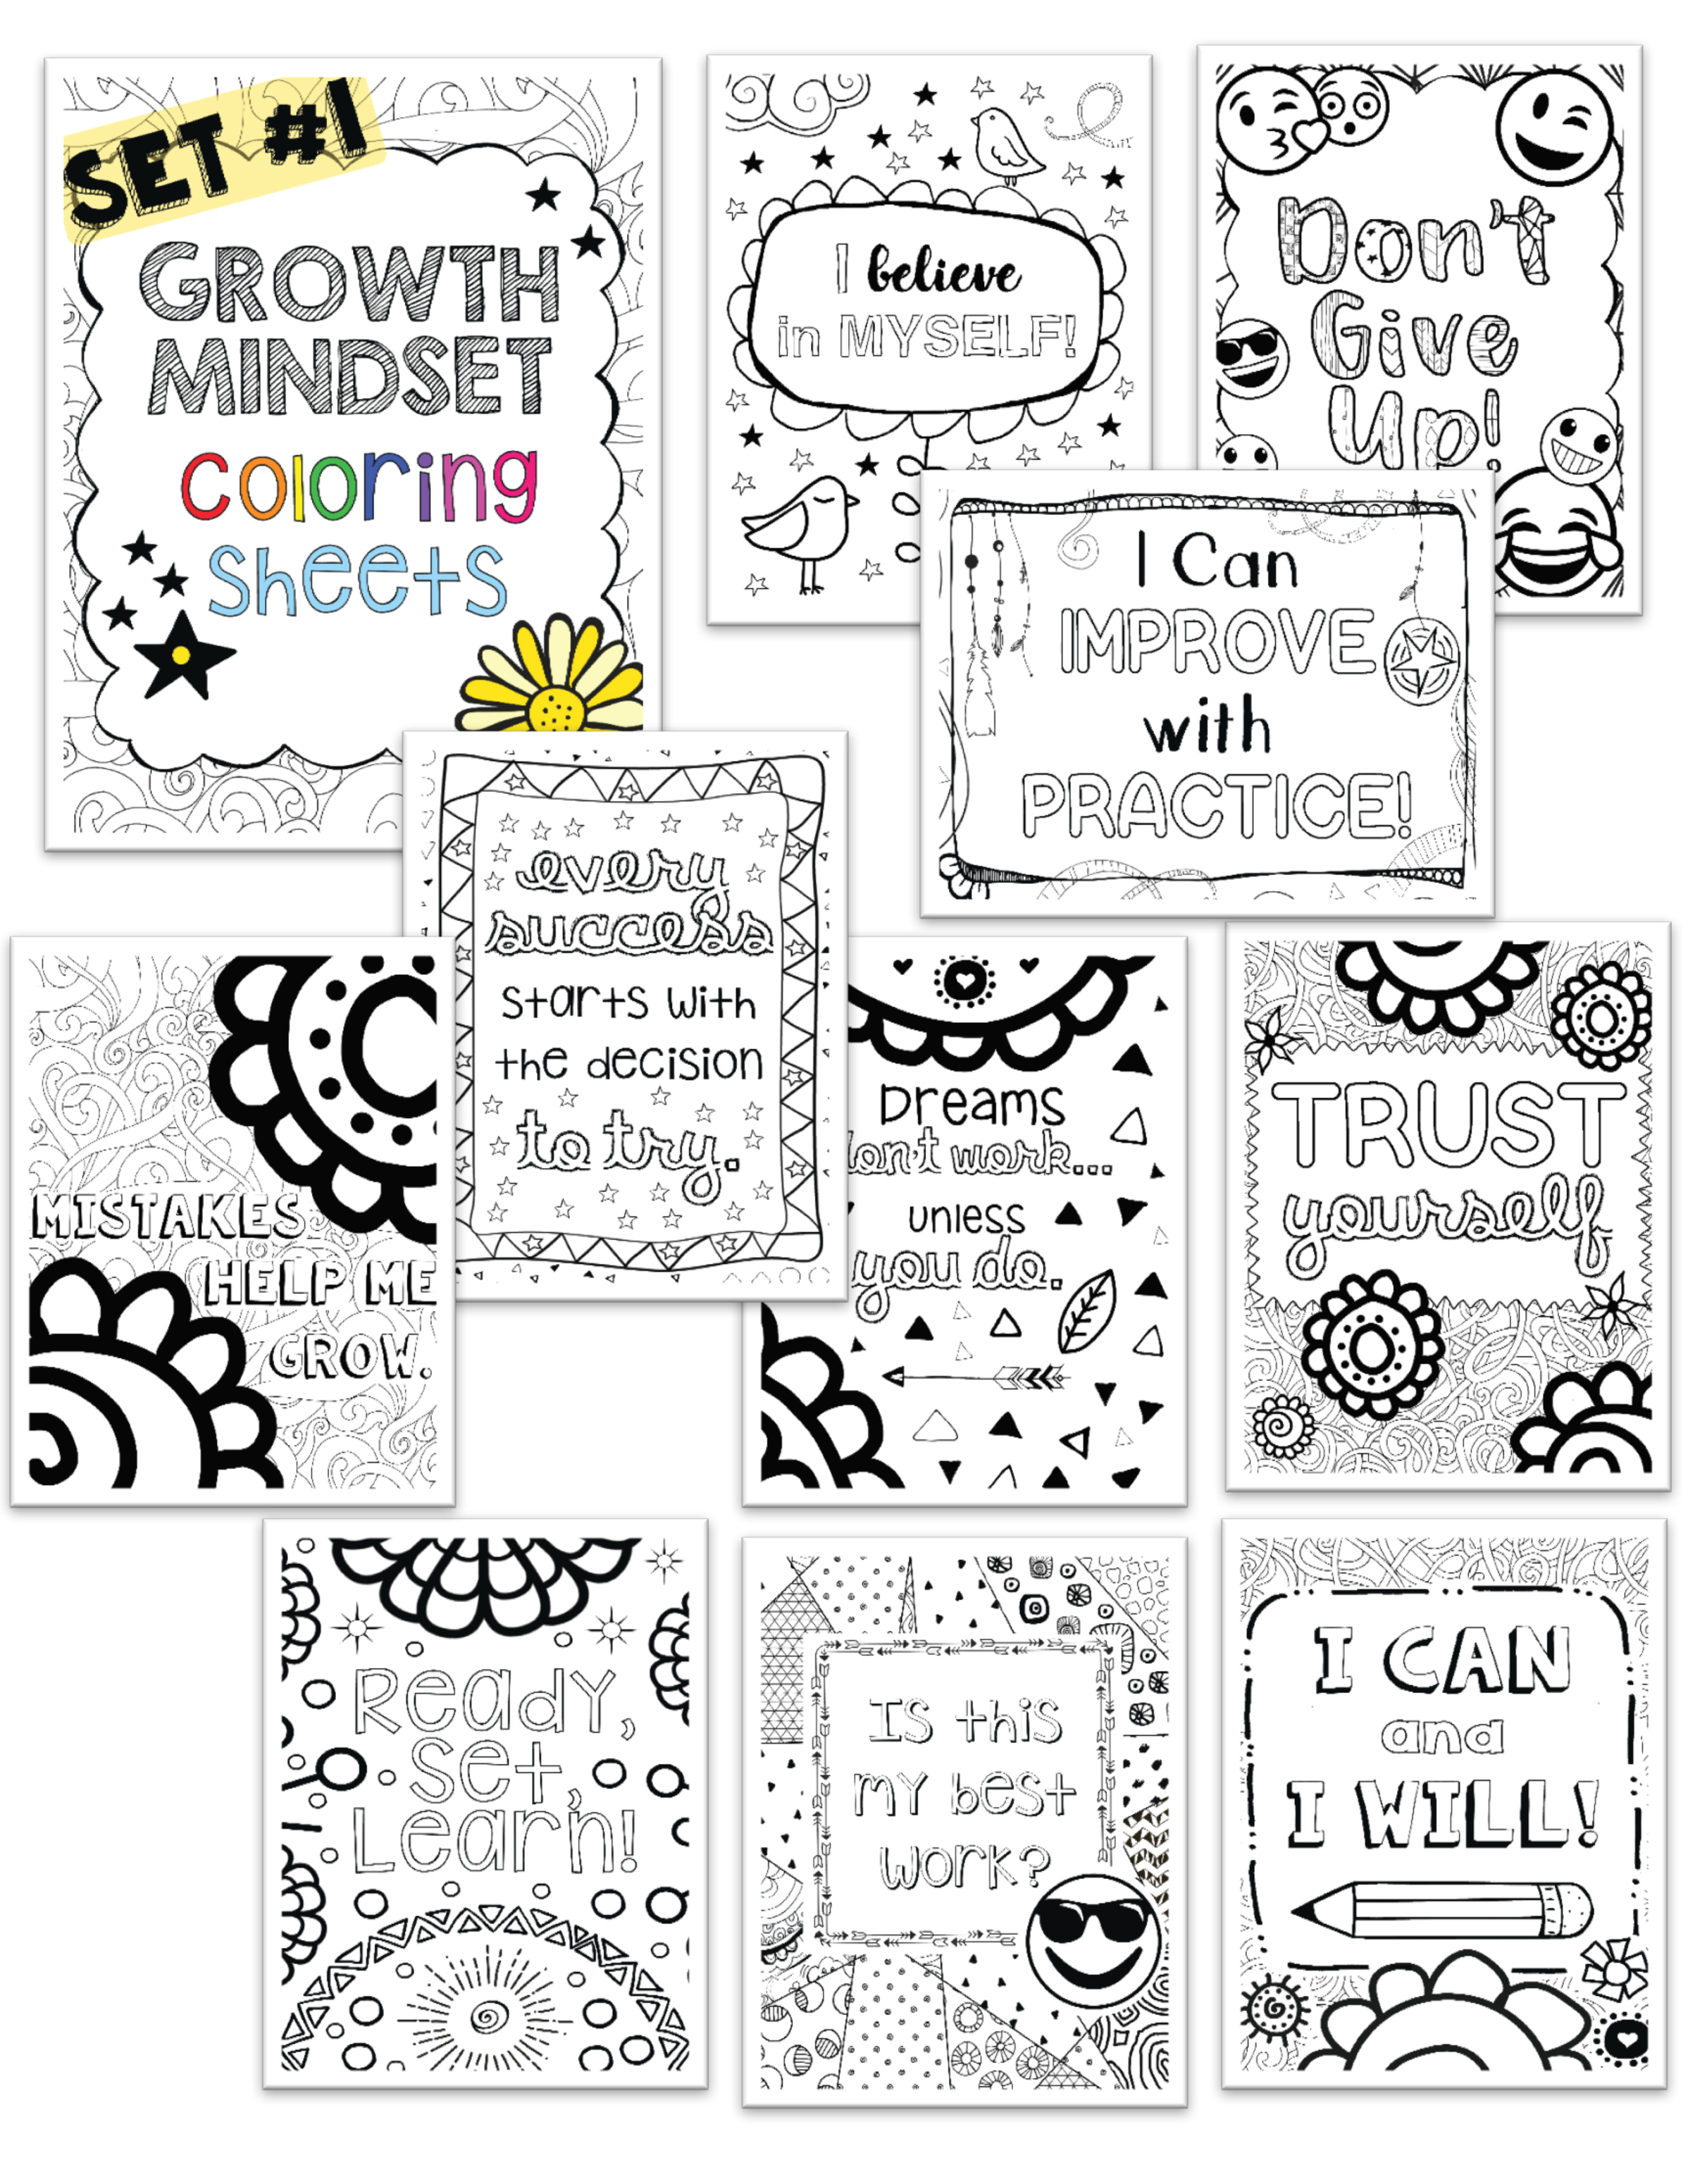 Free Coloring Page: Growth Mindset